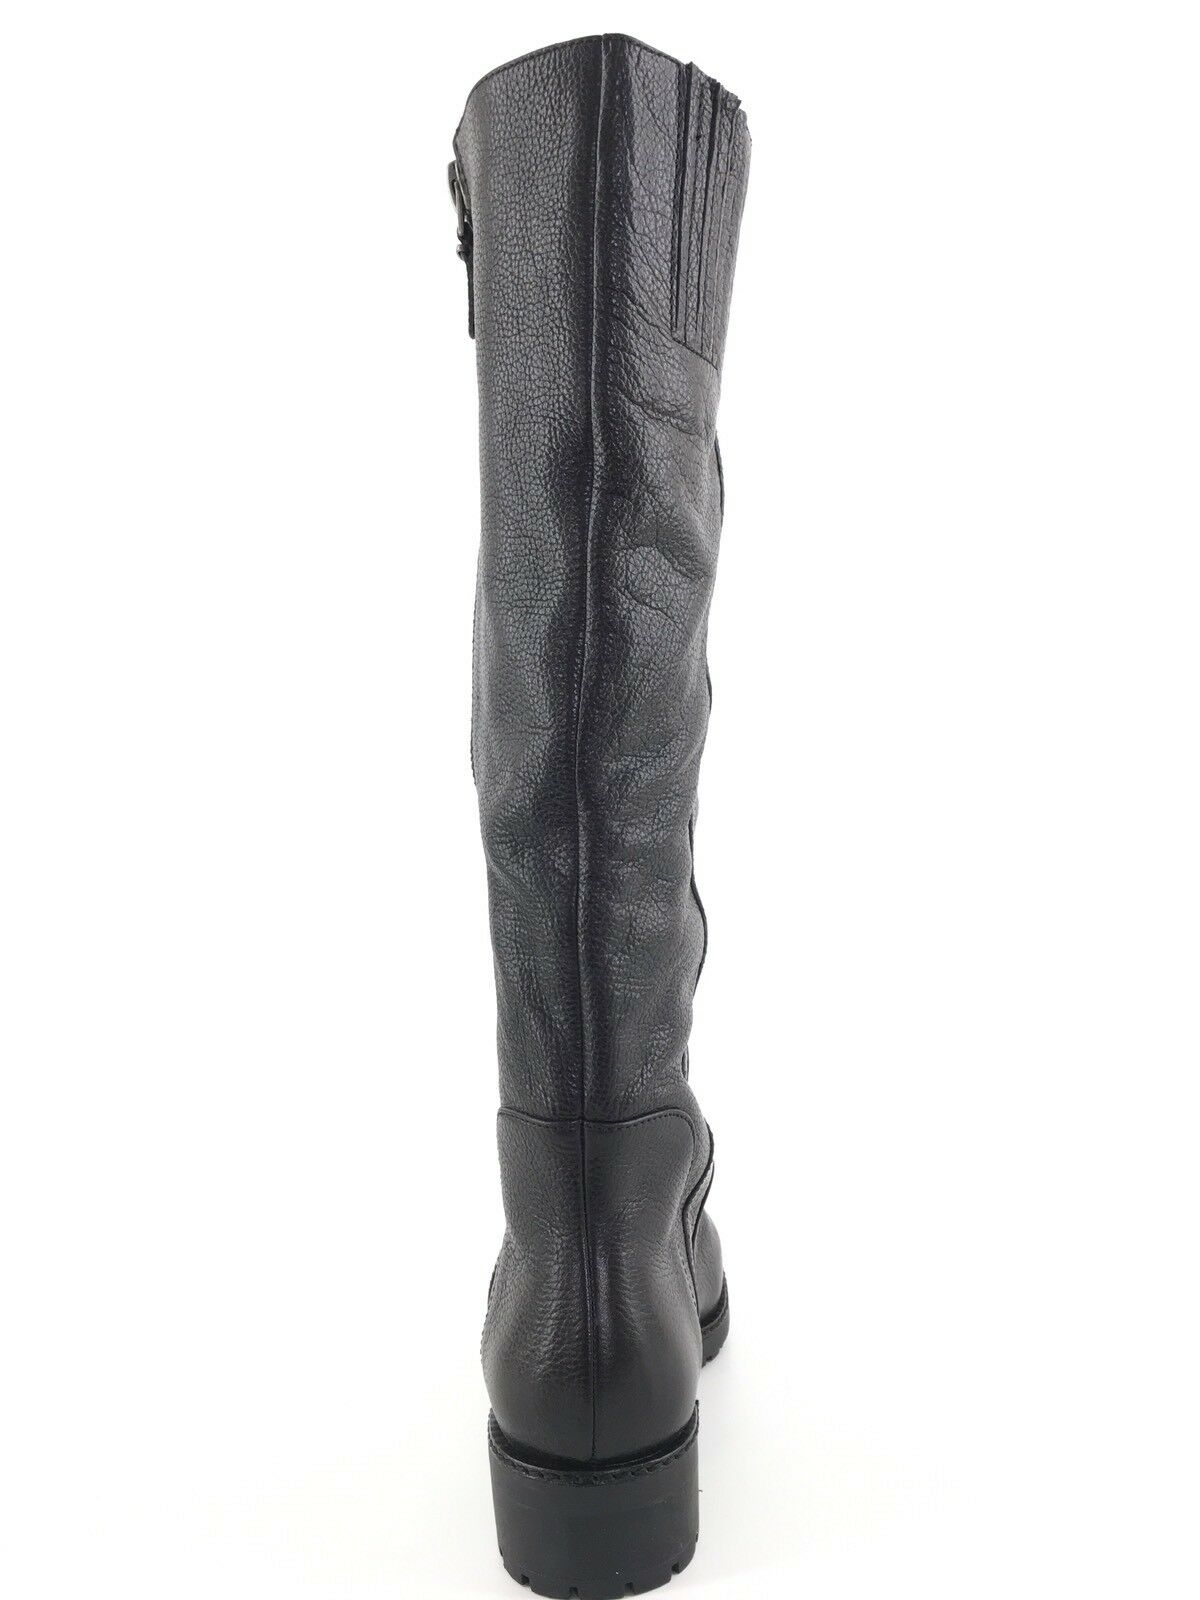 Via Spiga  Edeline  Black Vintage Vintage Vintage Calf Leather Knee High Riding Boots Size 6 M  a33f6b